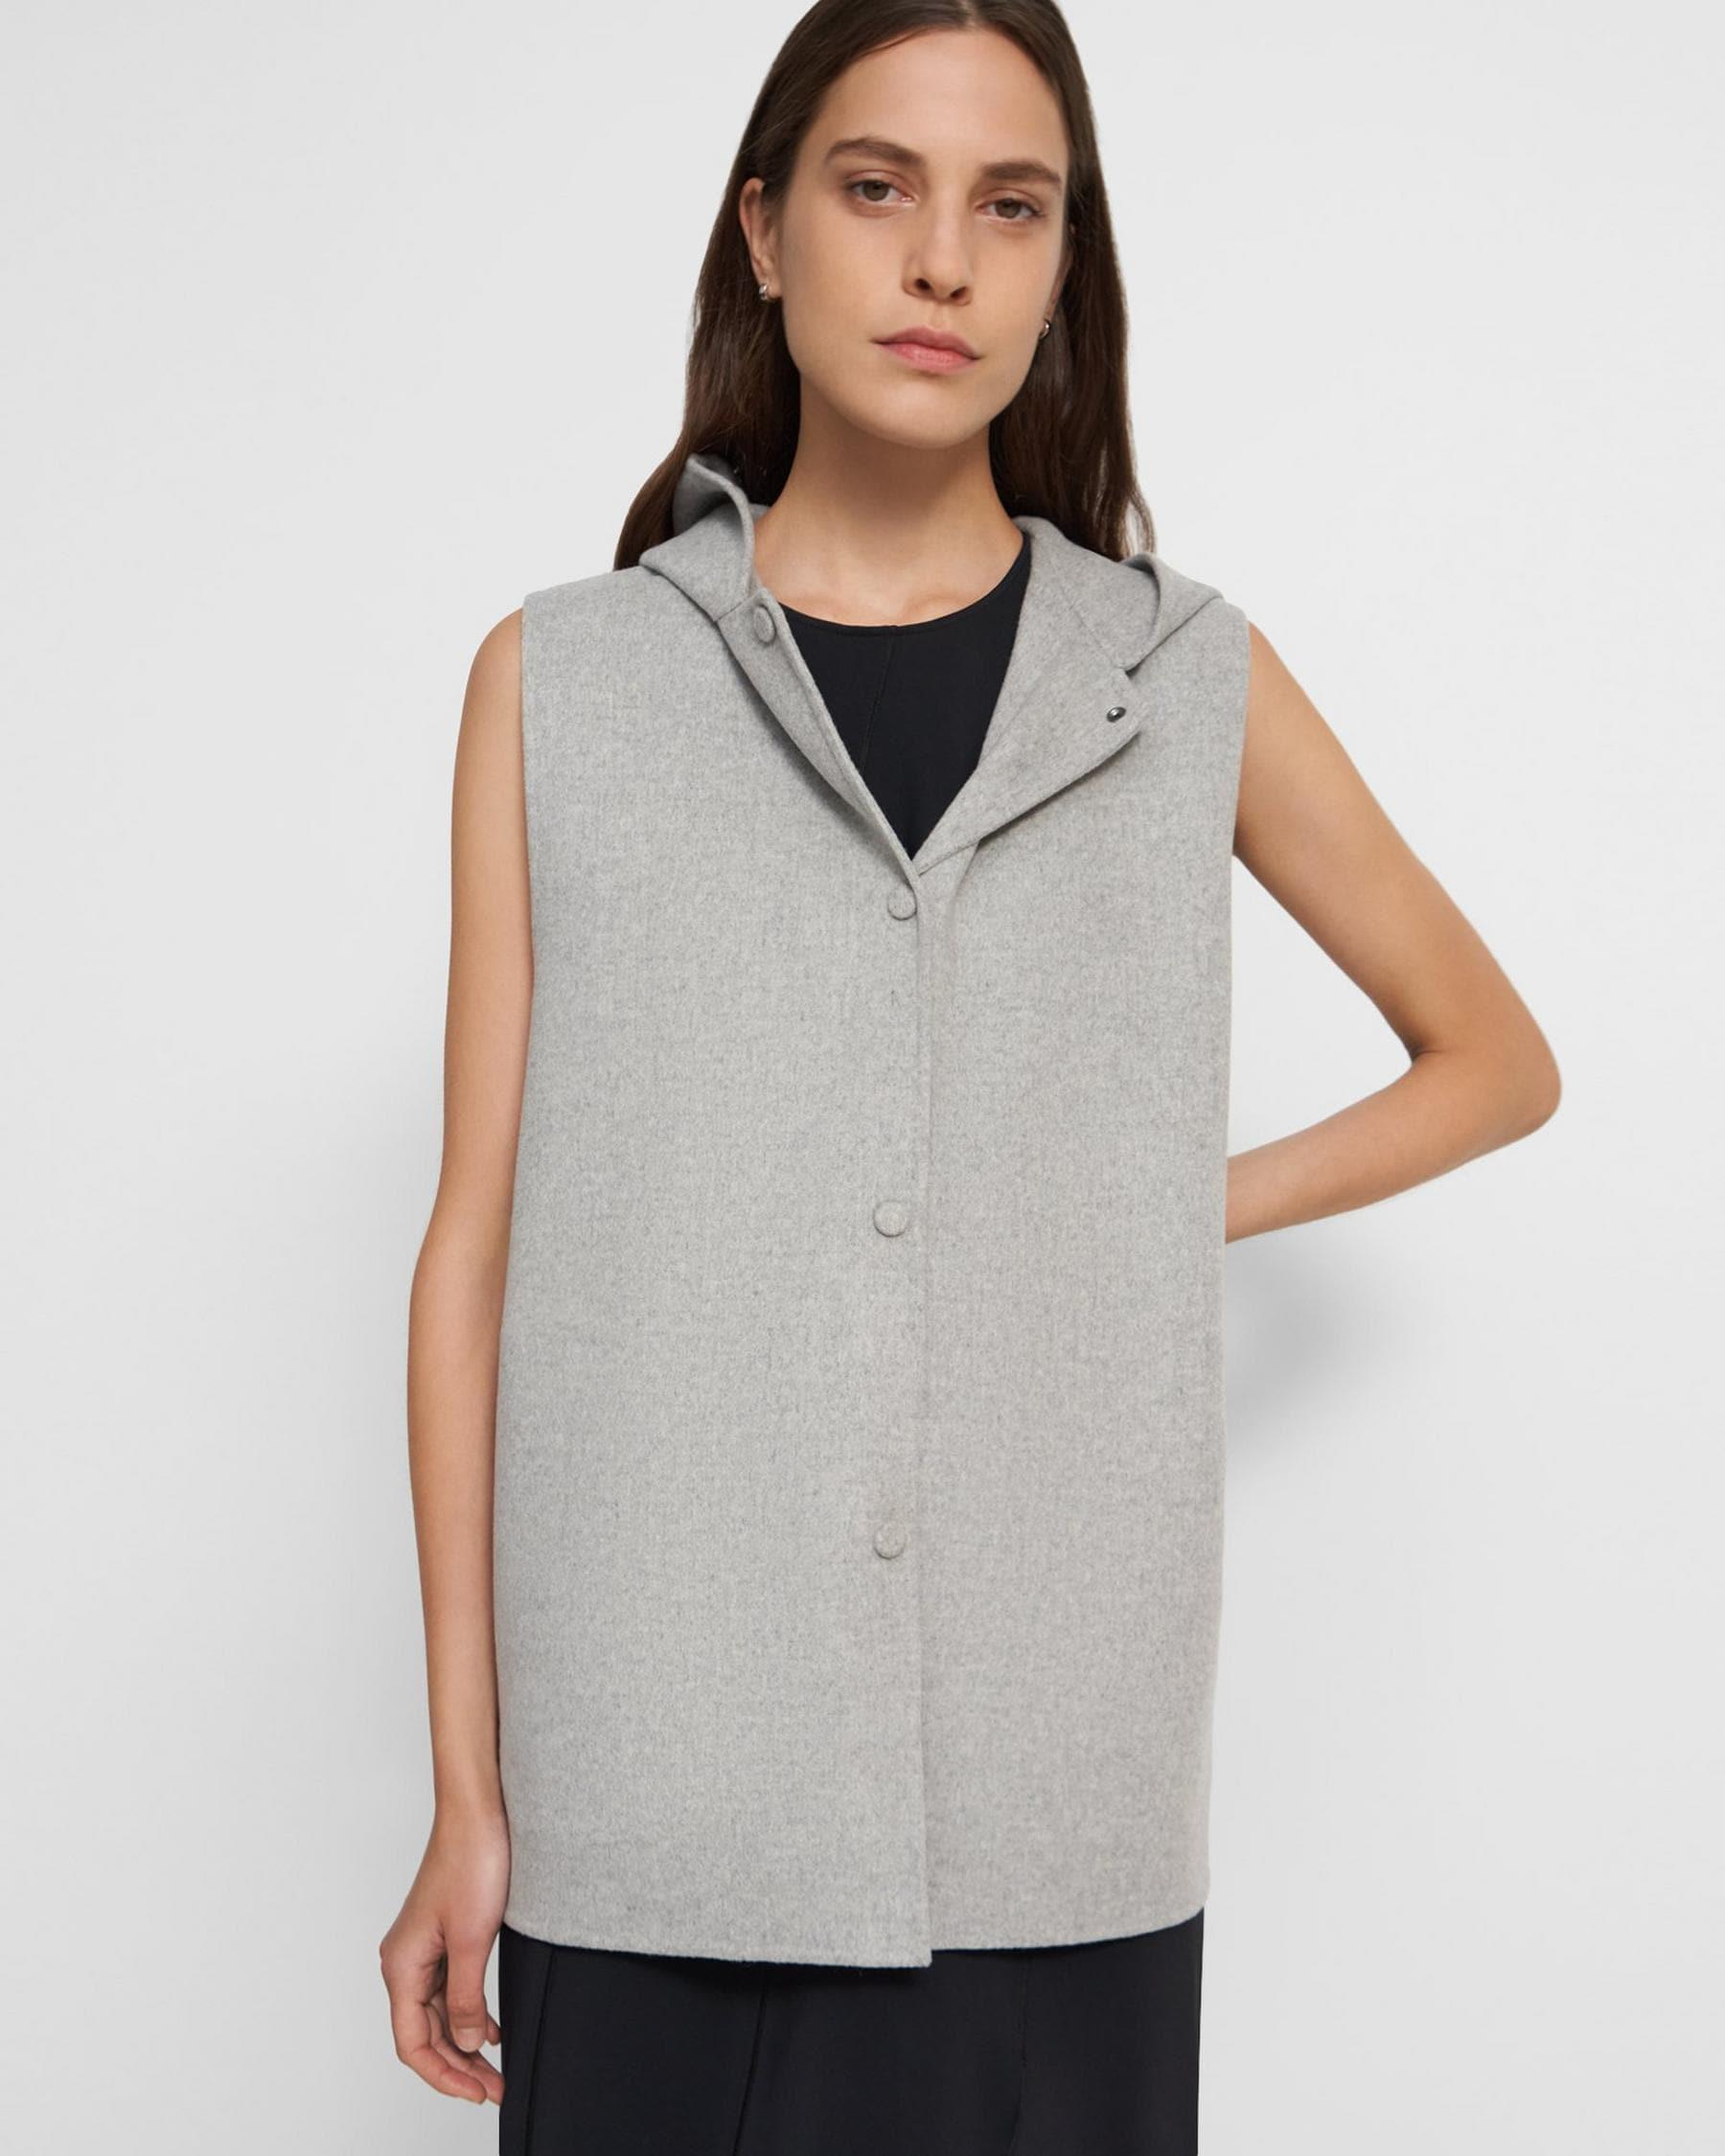 Clairene Vest in Double-Face Wool-Cashmere